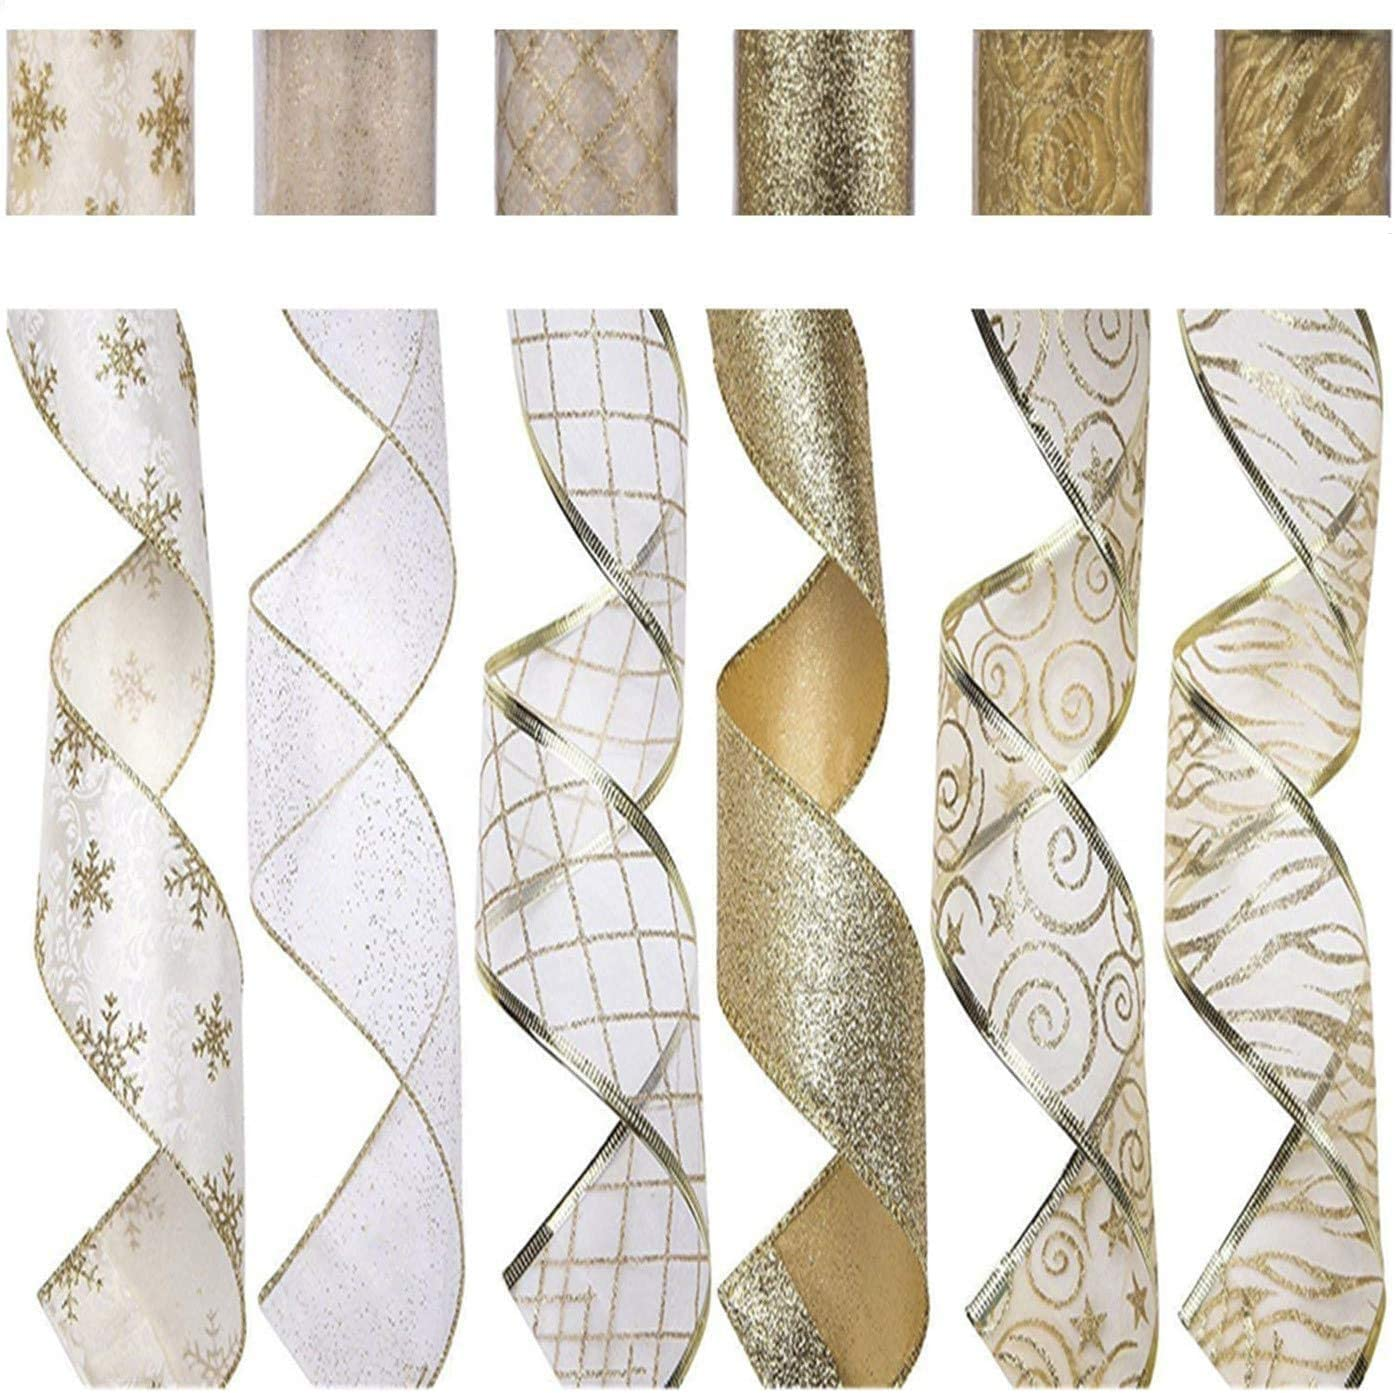 SANNO 2.5 inch 6 Rolls 36 Yards Christmas Wired Ribbon White Gold Wired Ribbon Bows Trim Assorted Organza Swirl Sheer Glitter Crafts Gift Wrapping Ribbons Holiday Wreath Decorations